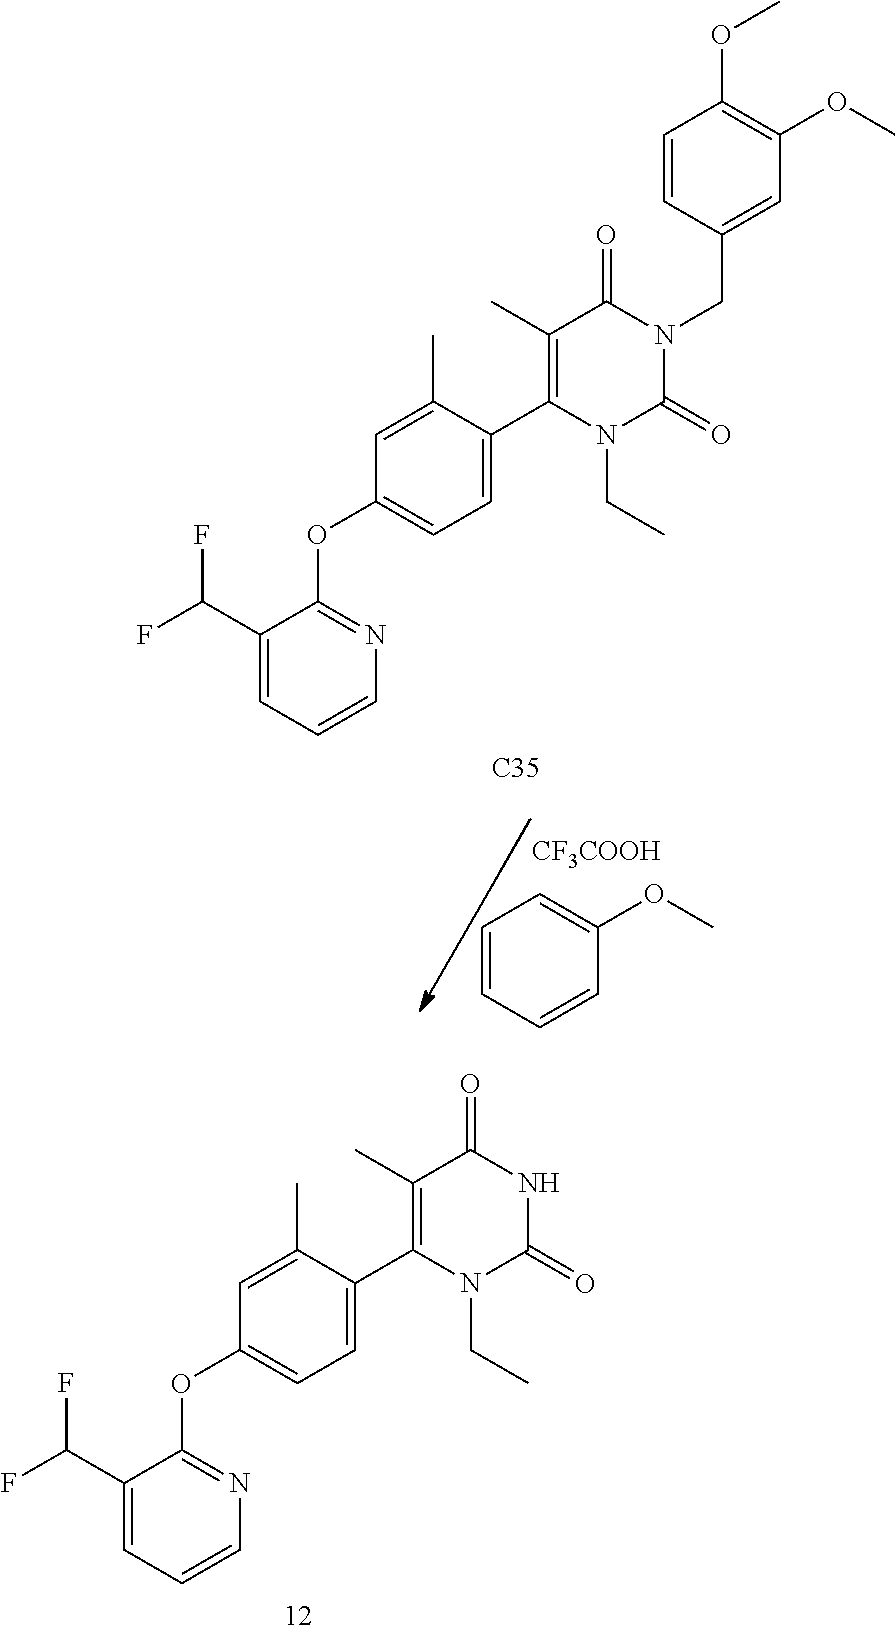 Us20170057947a1 Heteroaromatic Compounds And Their Use As Dopamine Society Fc97 Frequency Counter Electronic Circuit Schematic Figure 20170302 C00040